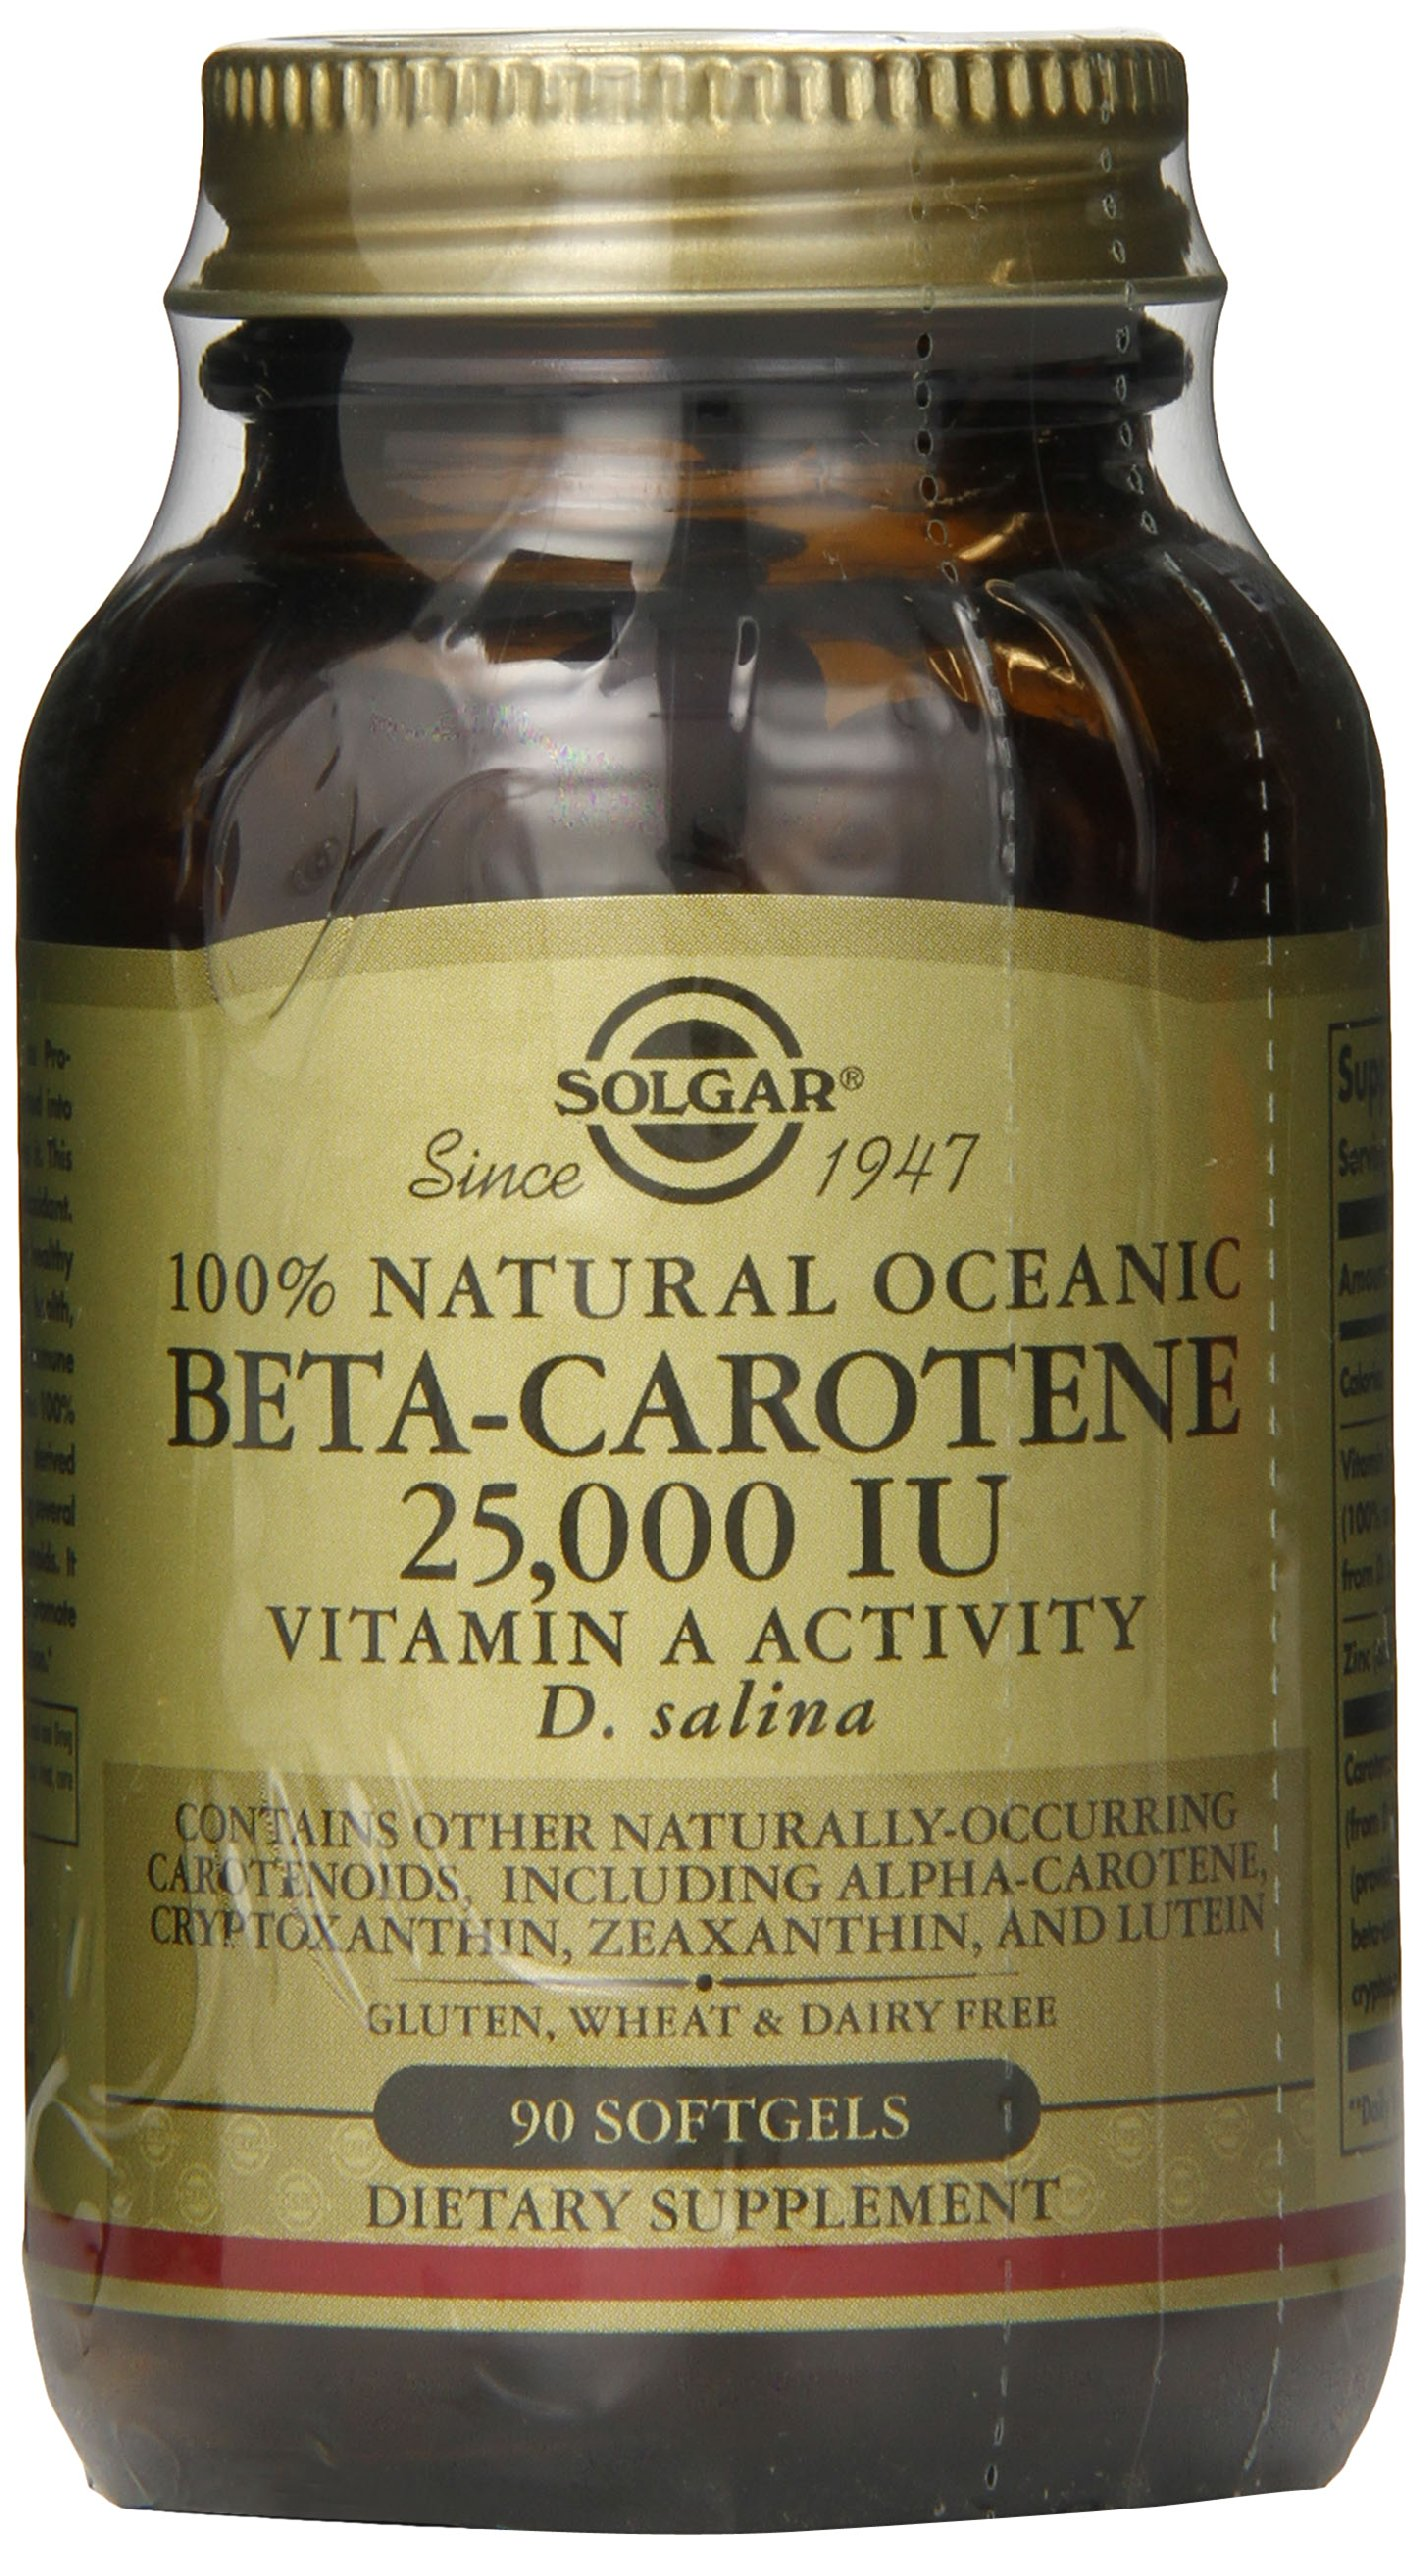 Solgar Oceanic Beta Carotene 25,000 IU Softgels, 90 Count